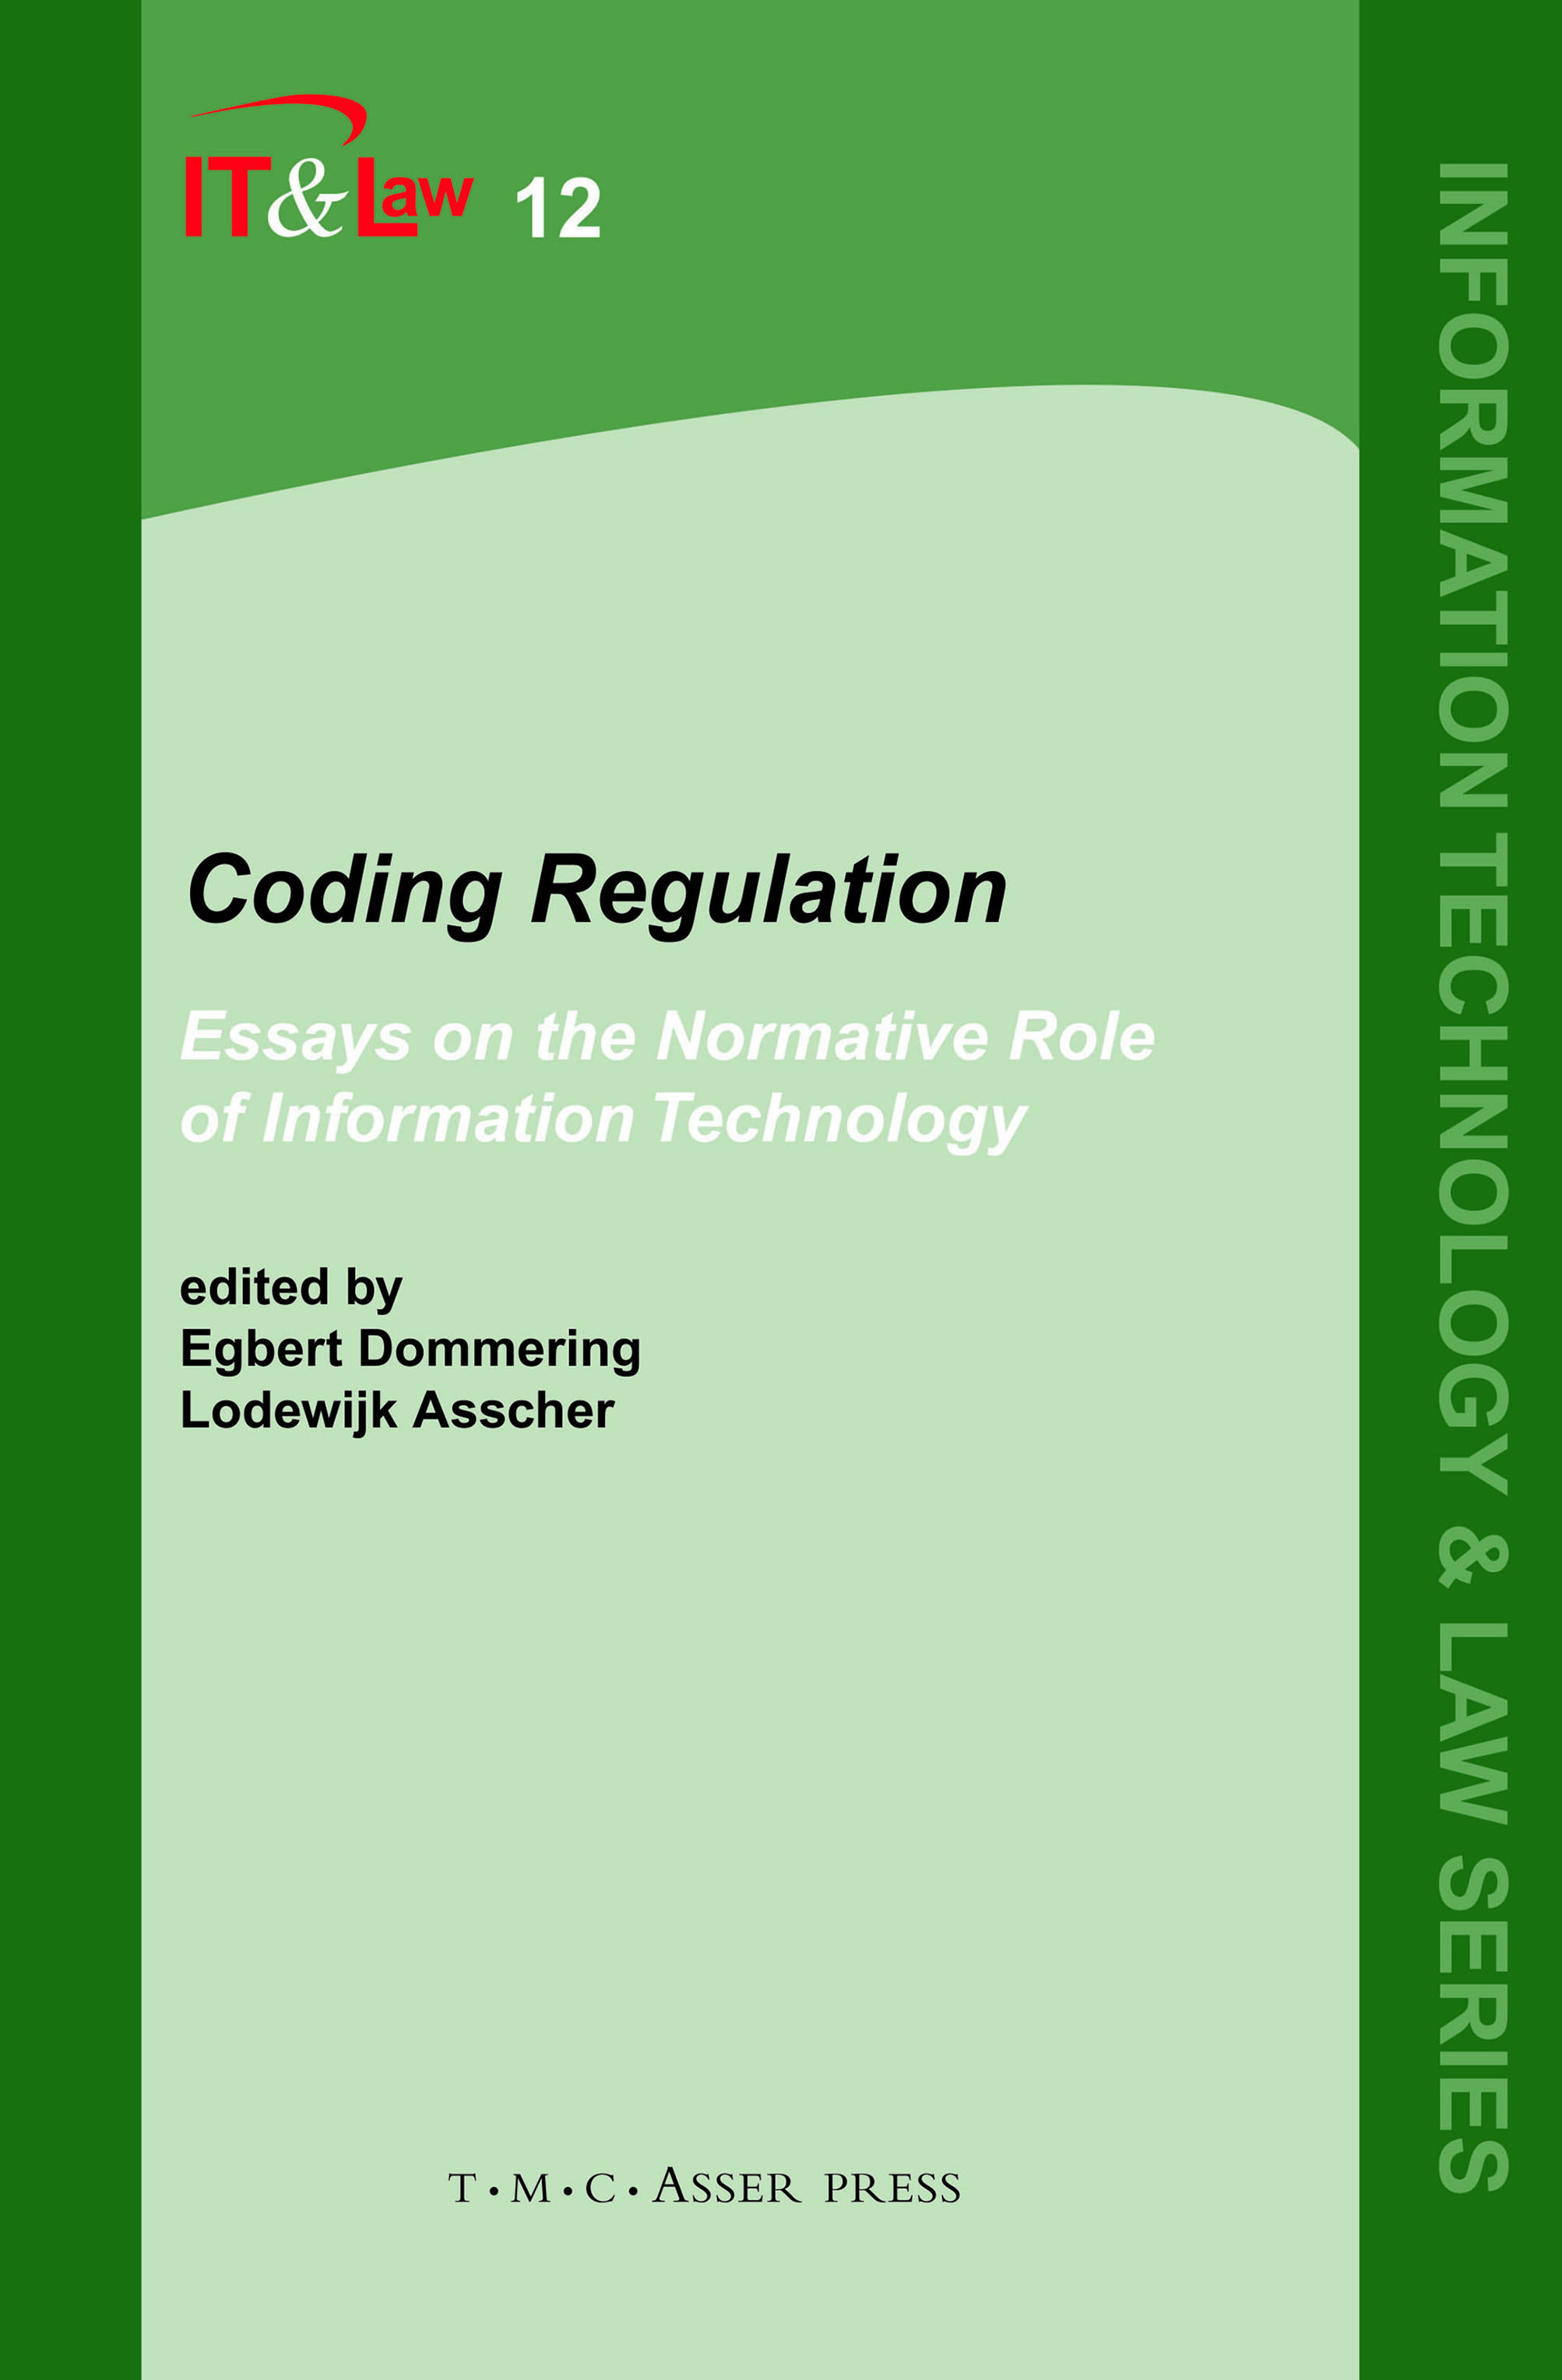 Coding Regulation - Essays on the Normative Role of Information Technology